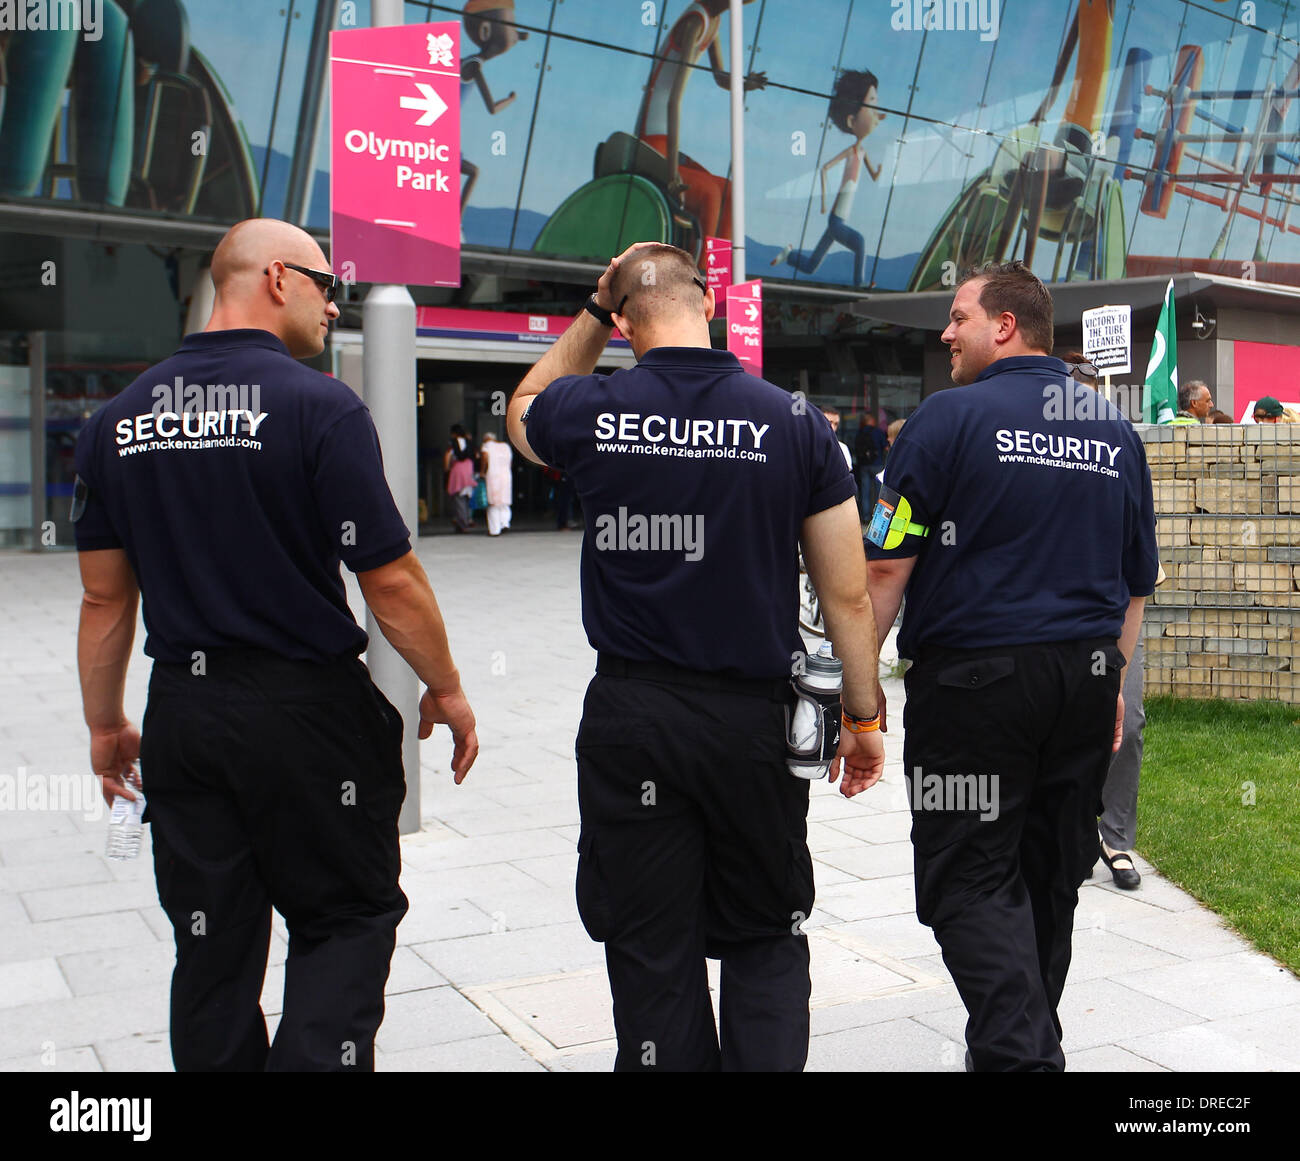 What 4 Group Security